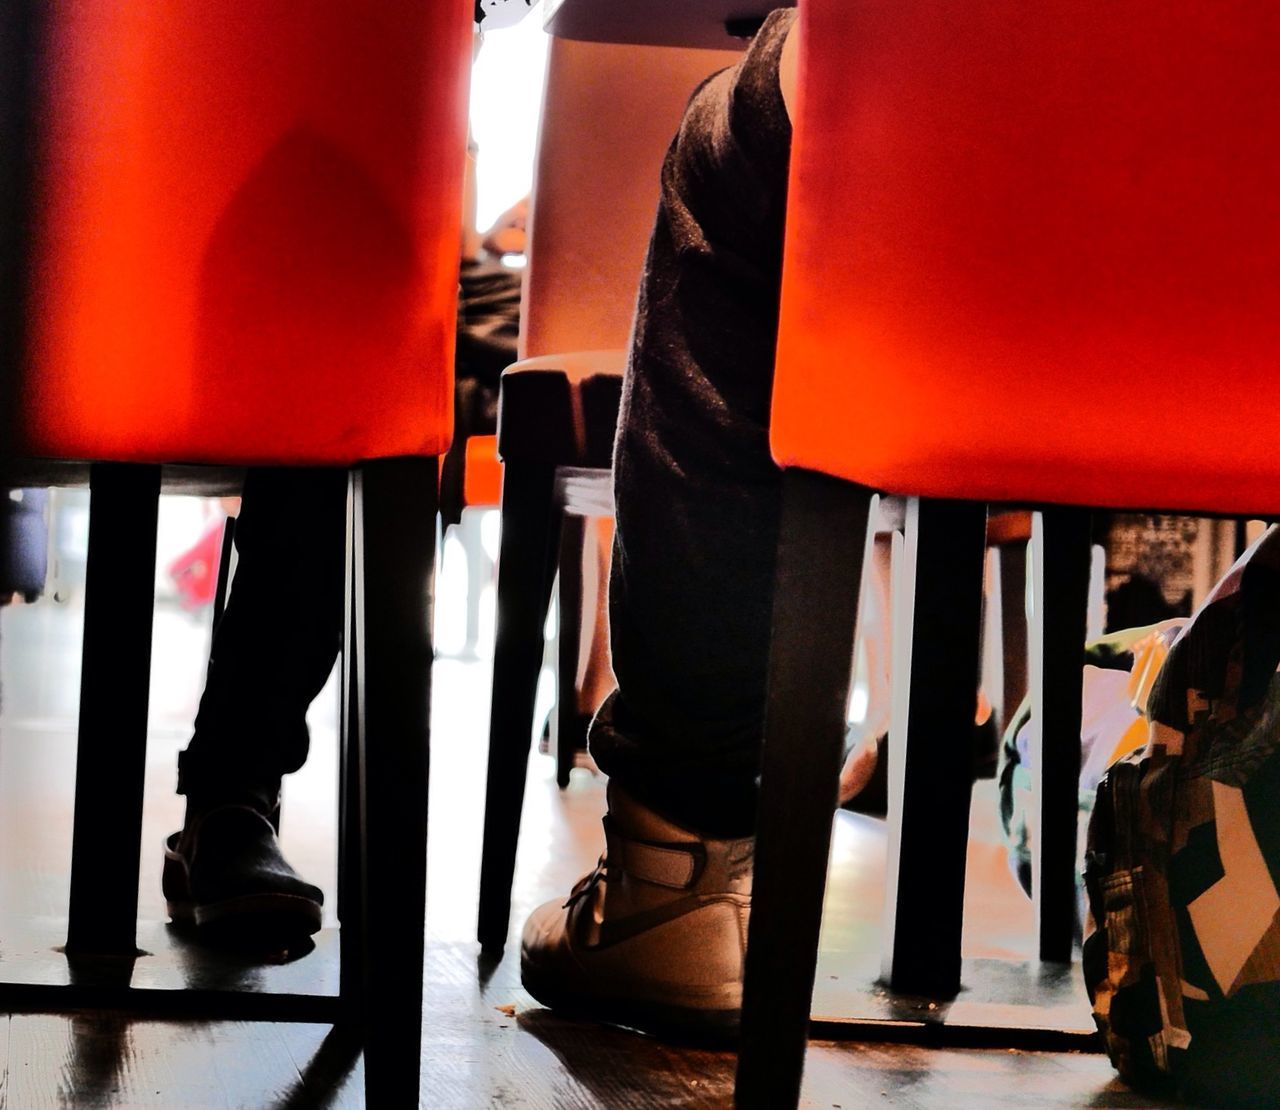 Low Section Of People Sitting At Restaurant On Red Chairs